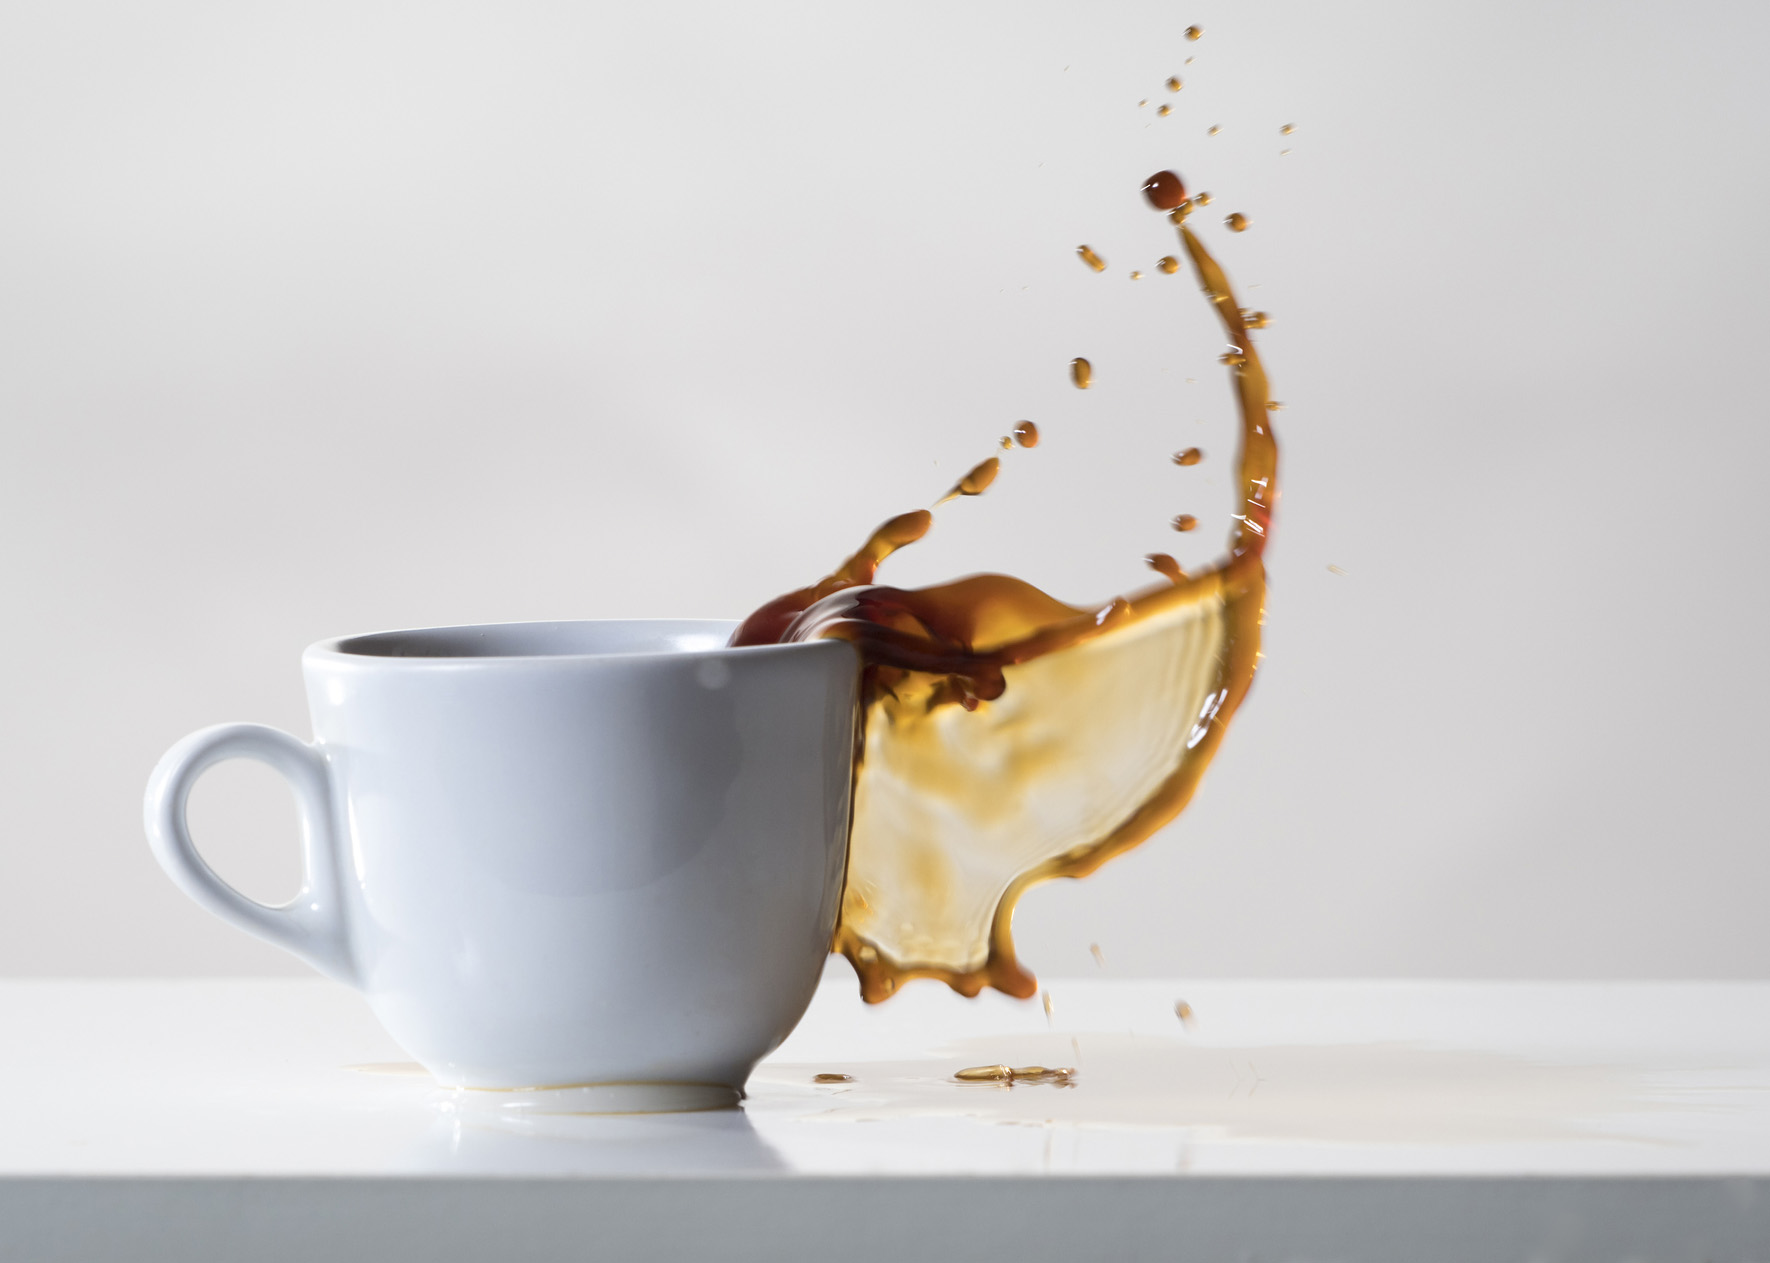 How To Clean Coffee Stains Lovetoknow